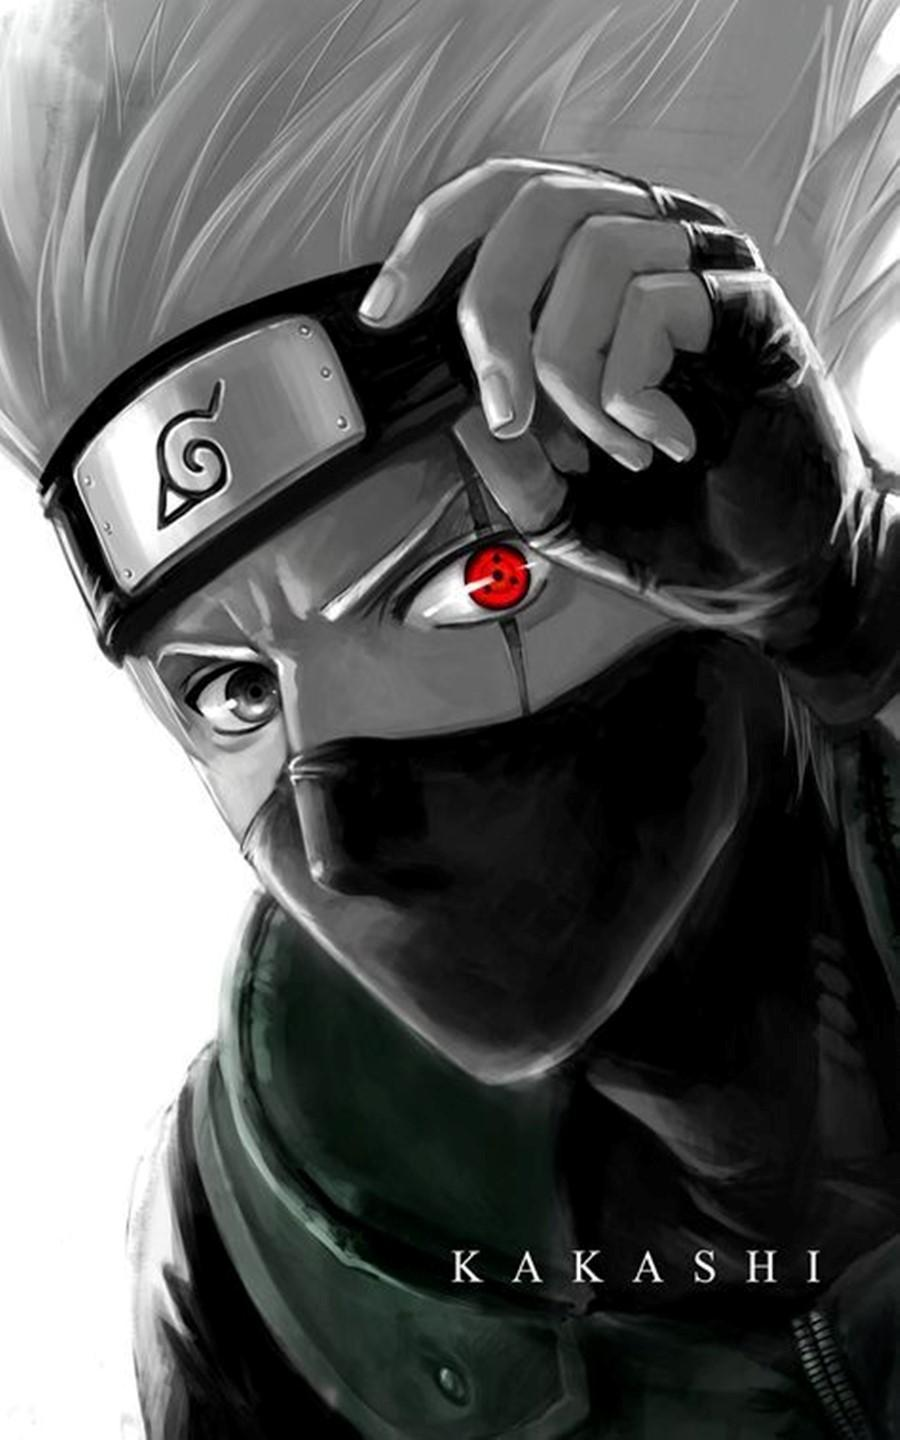 Kakashi Face Wallpapers Top Free Kakashi Face Backgrounds Wallpaperaccess